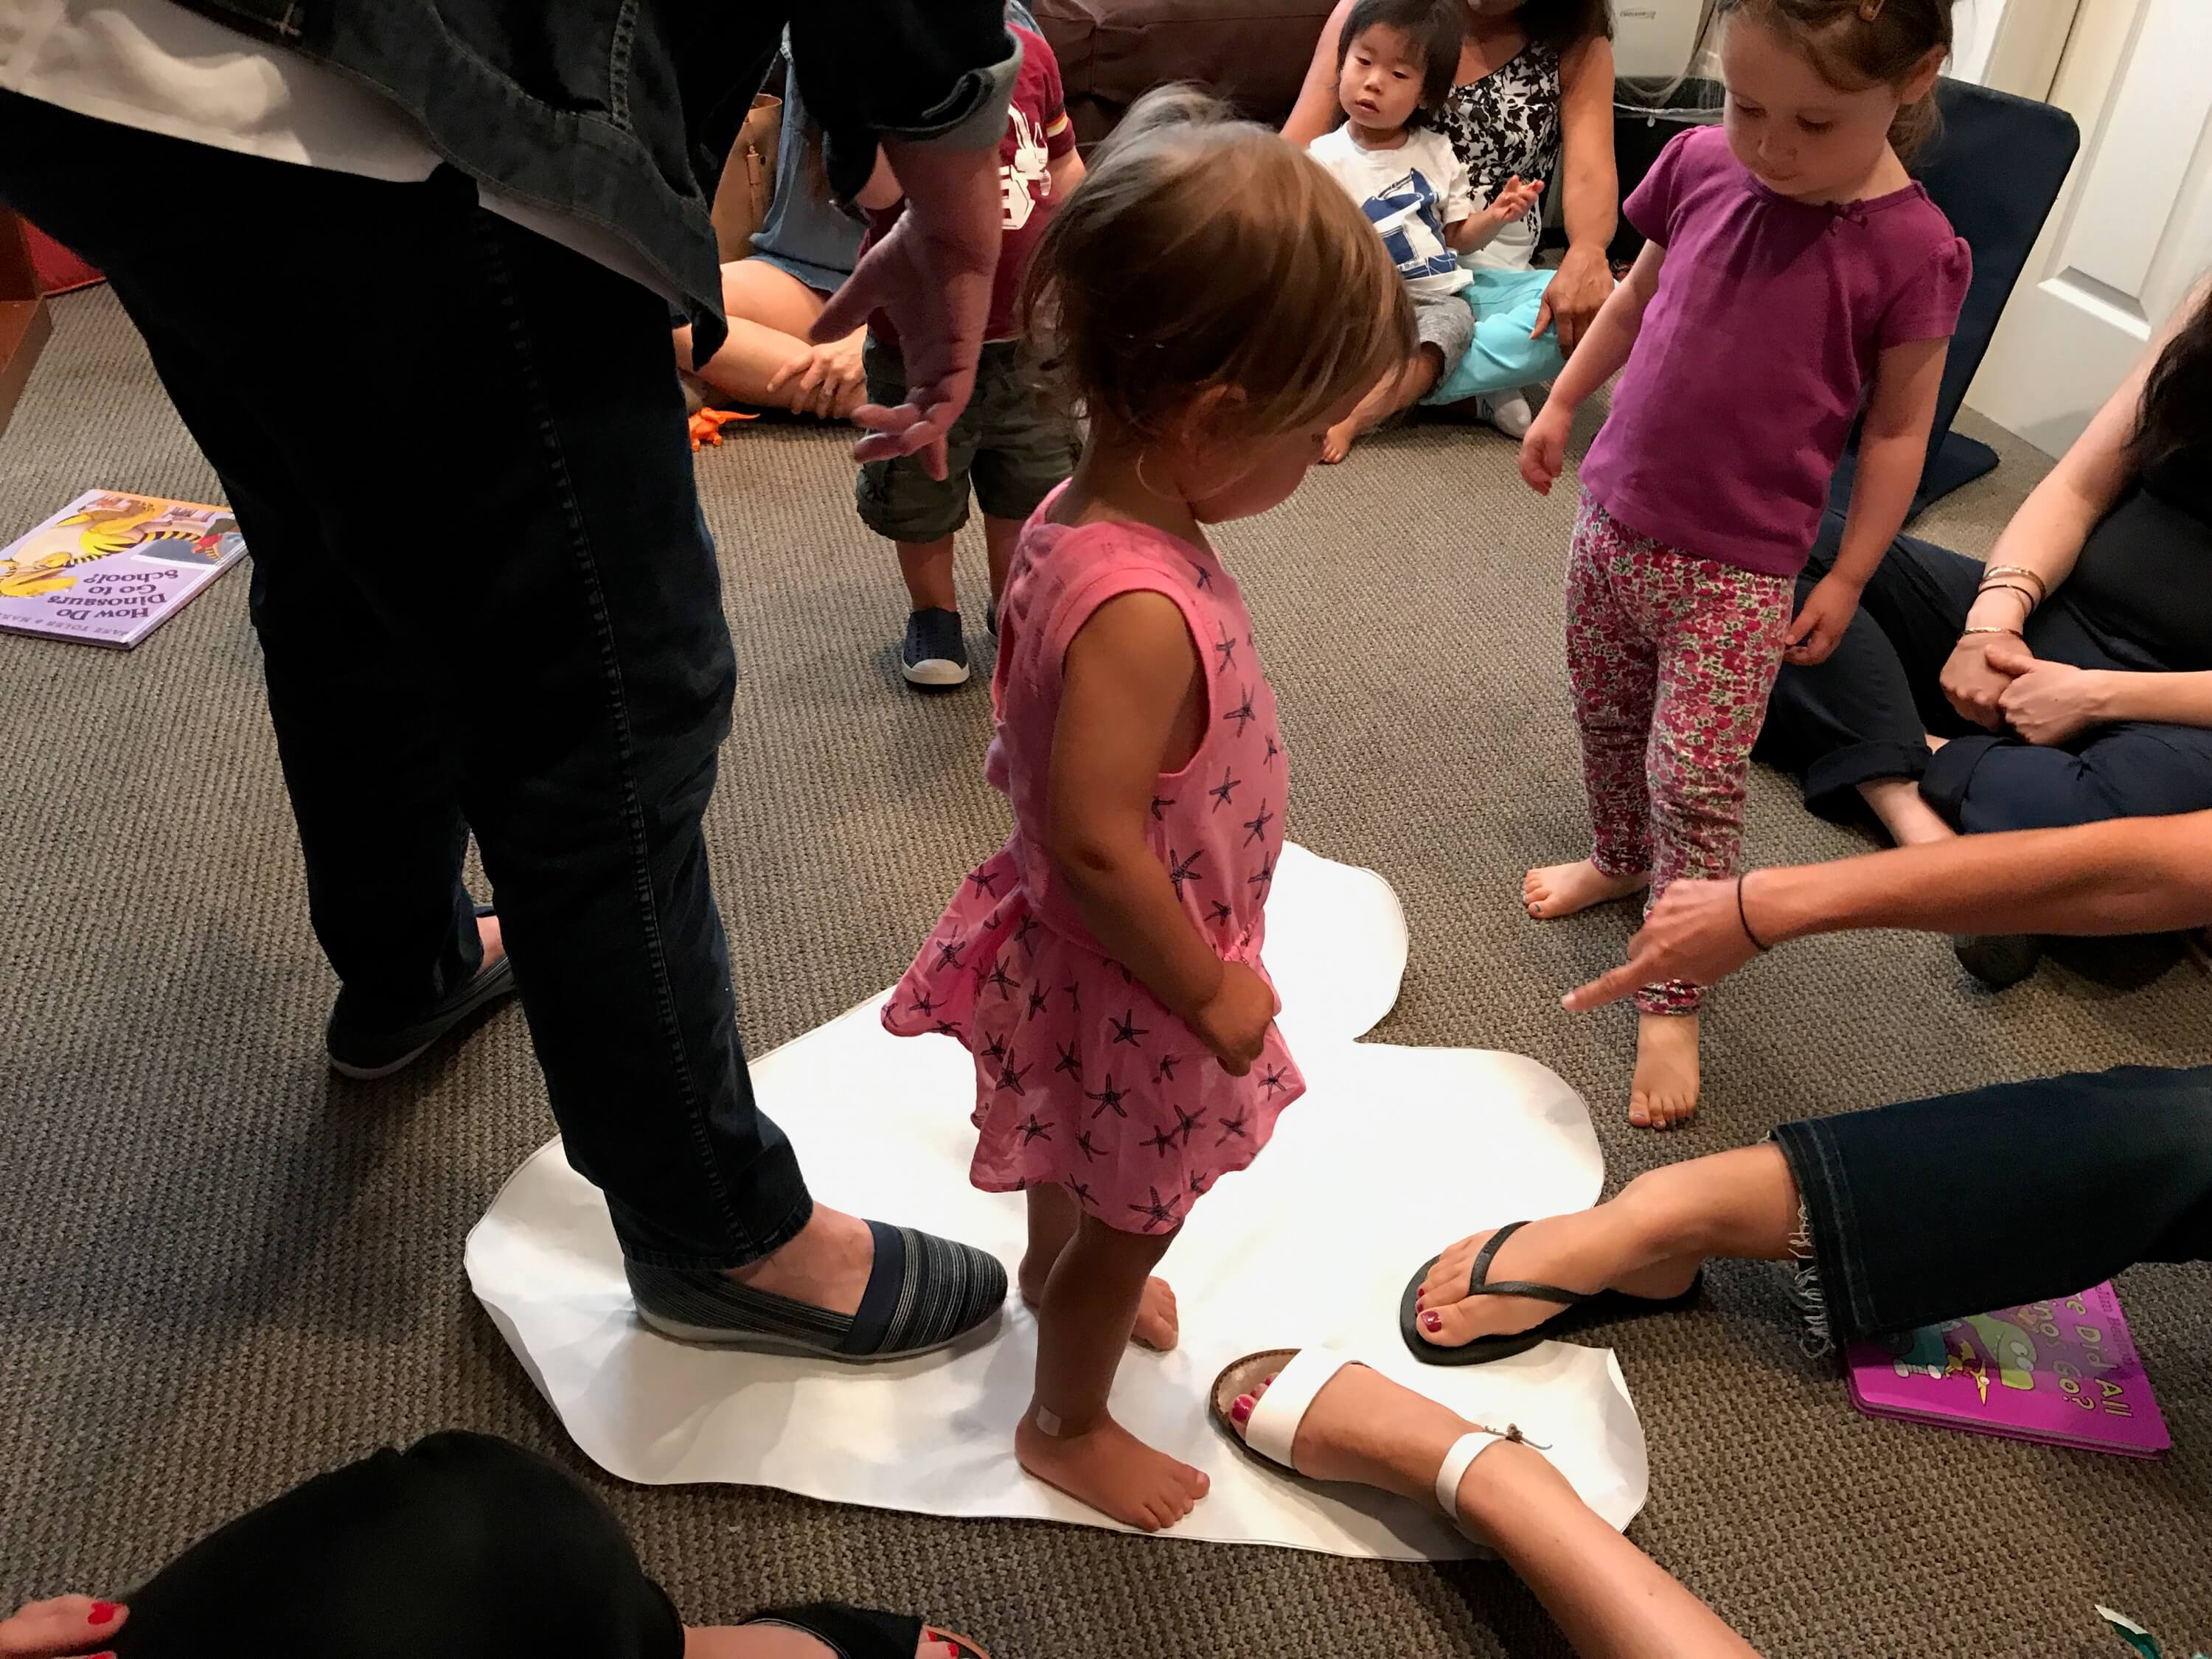 toddler measuring sizes of feet comparing to pig dinasour print on the floor at Early Childhood Development Associates's preschool prep class